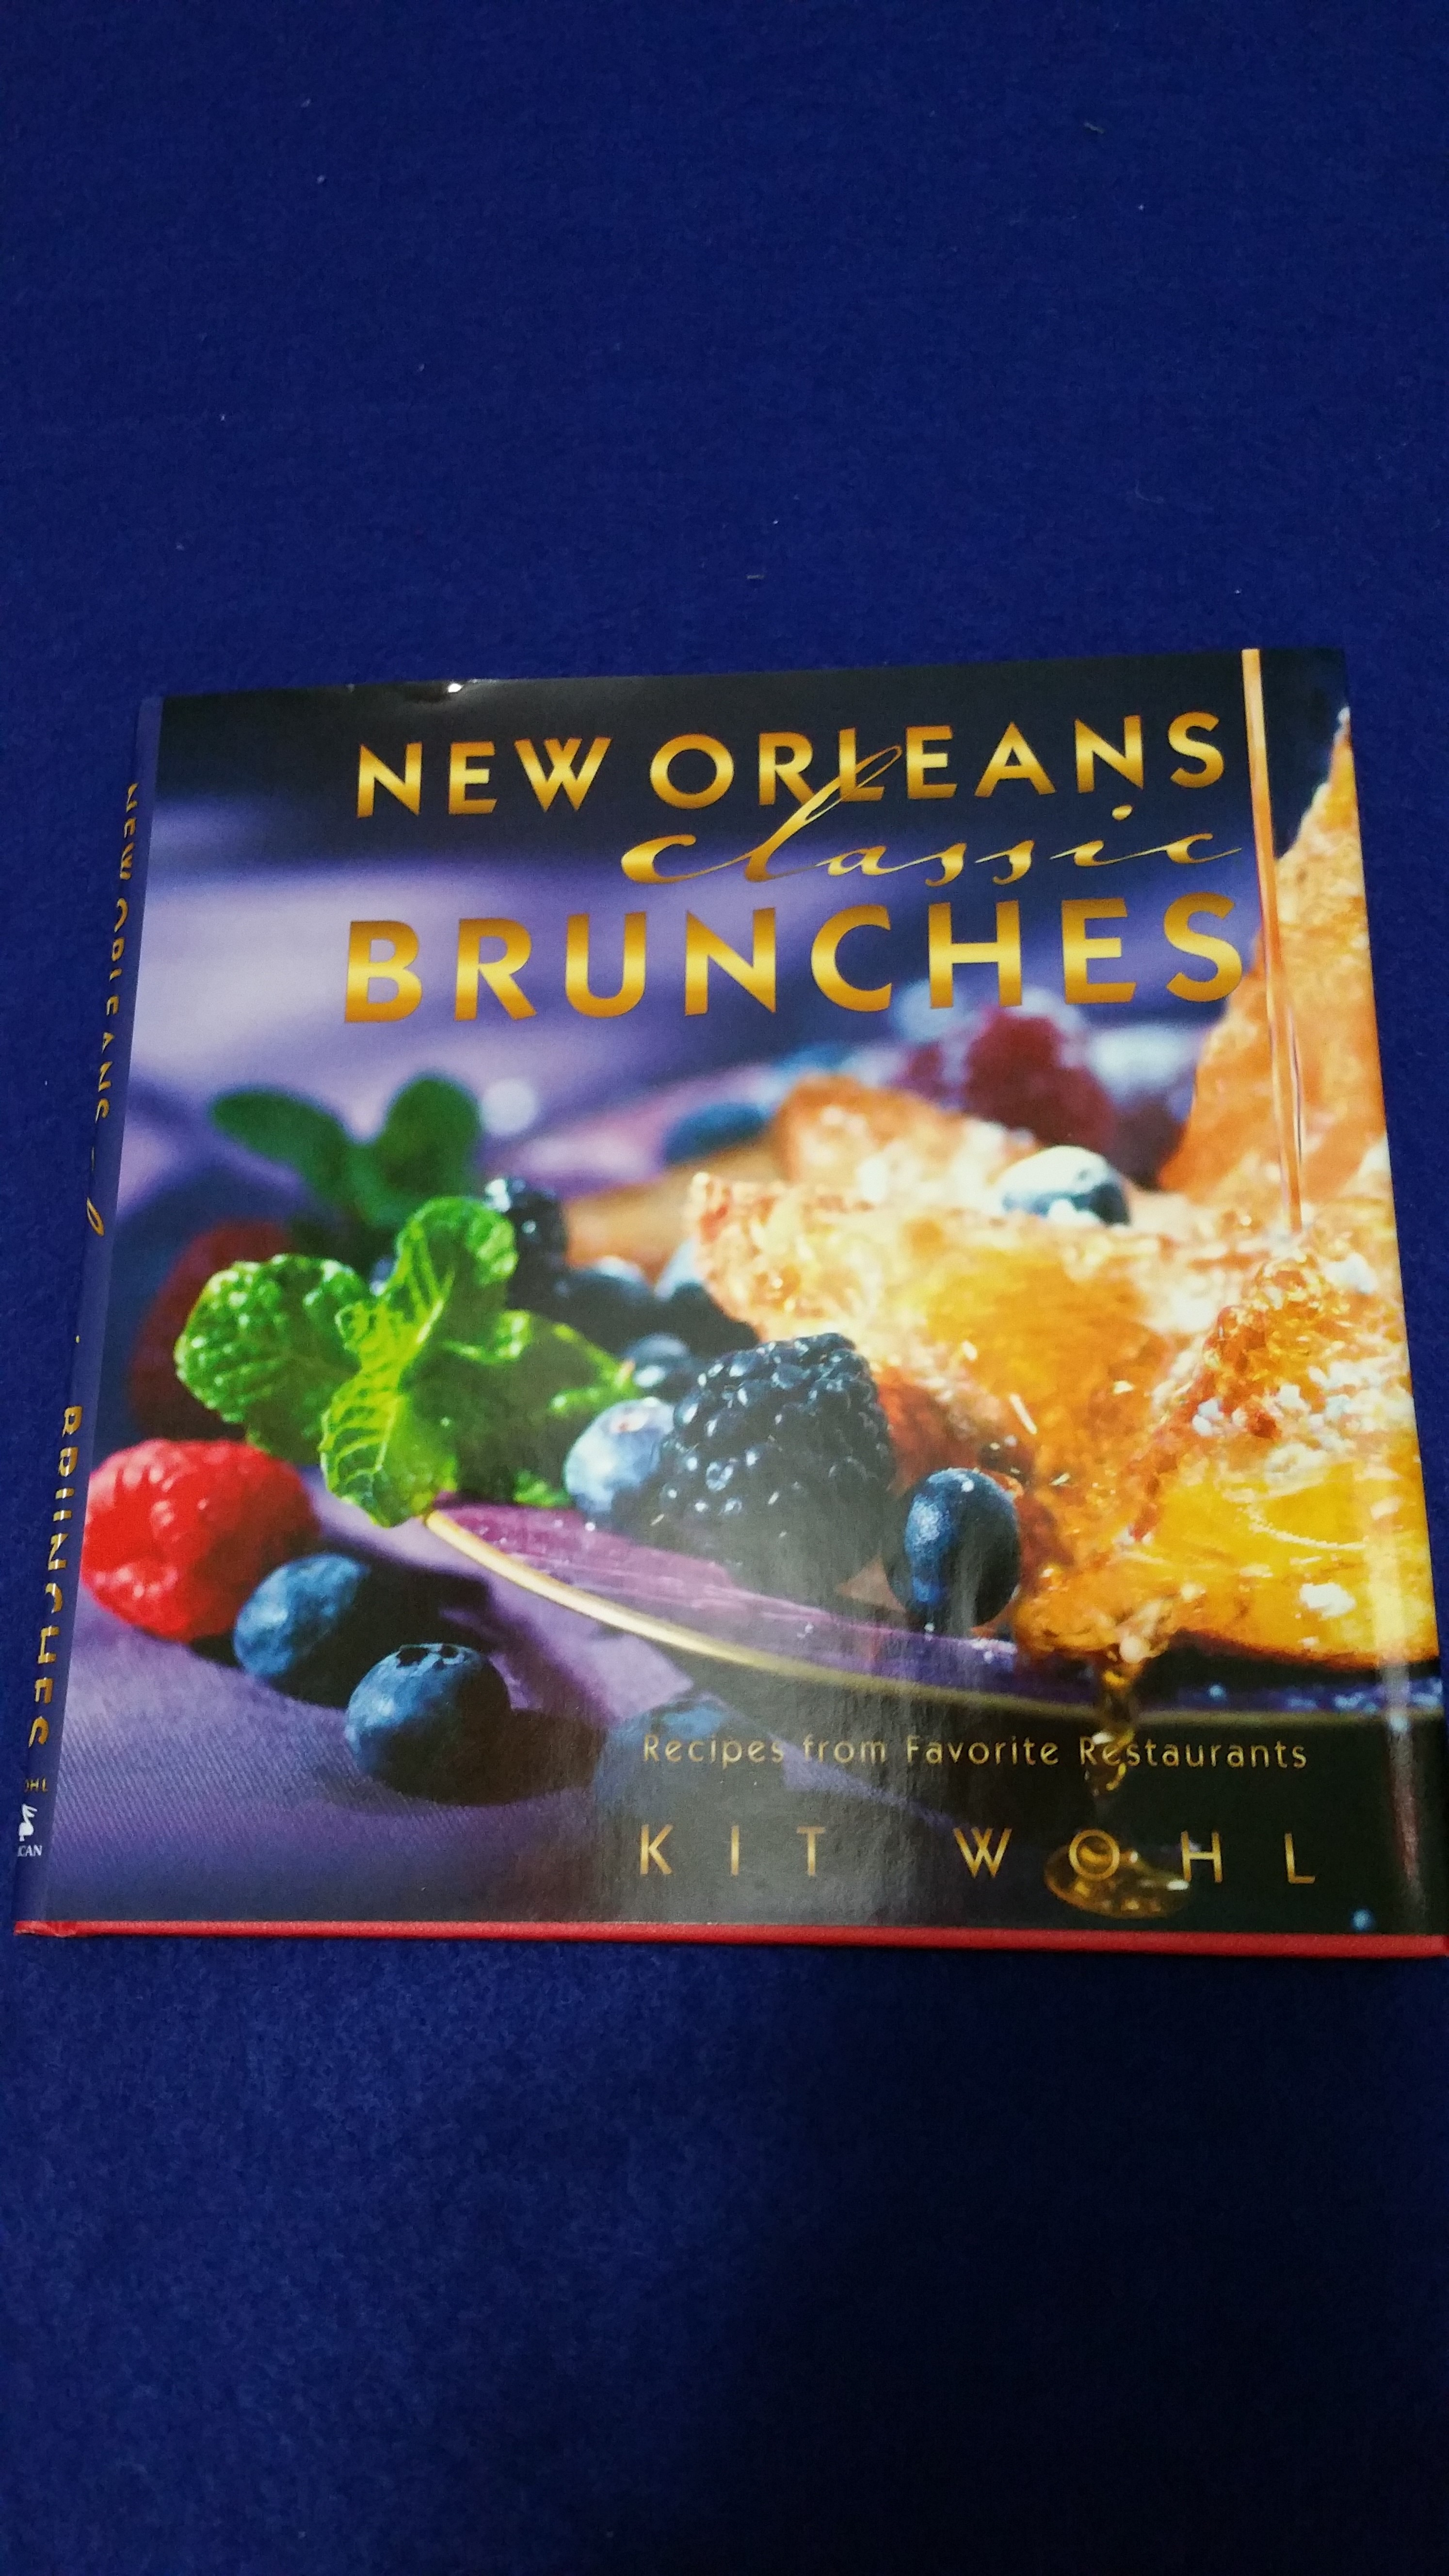 Kit Wohl - Brunches Cookbook